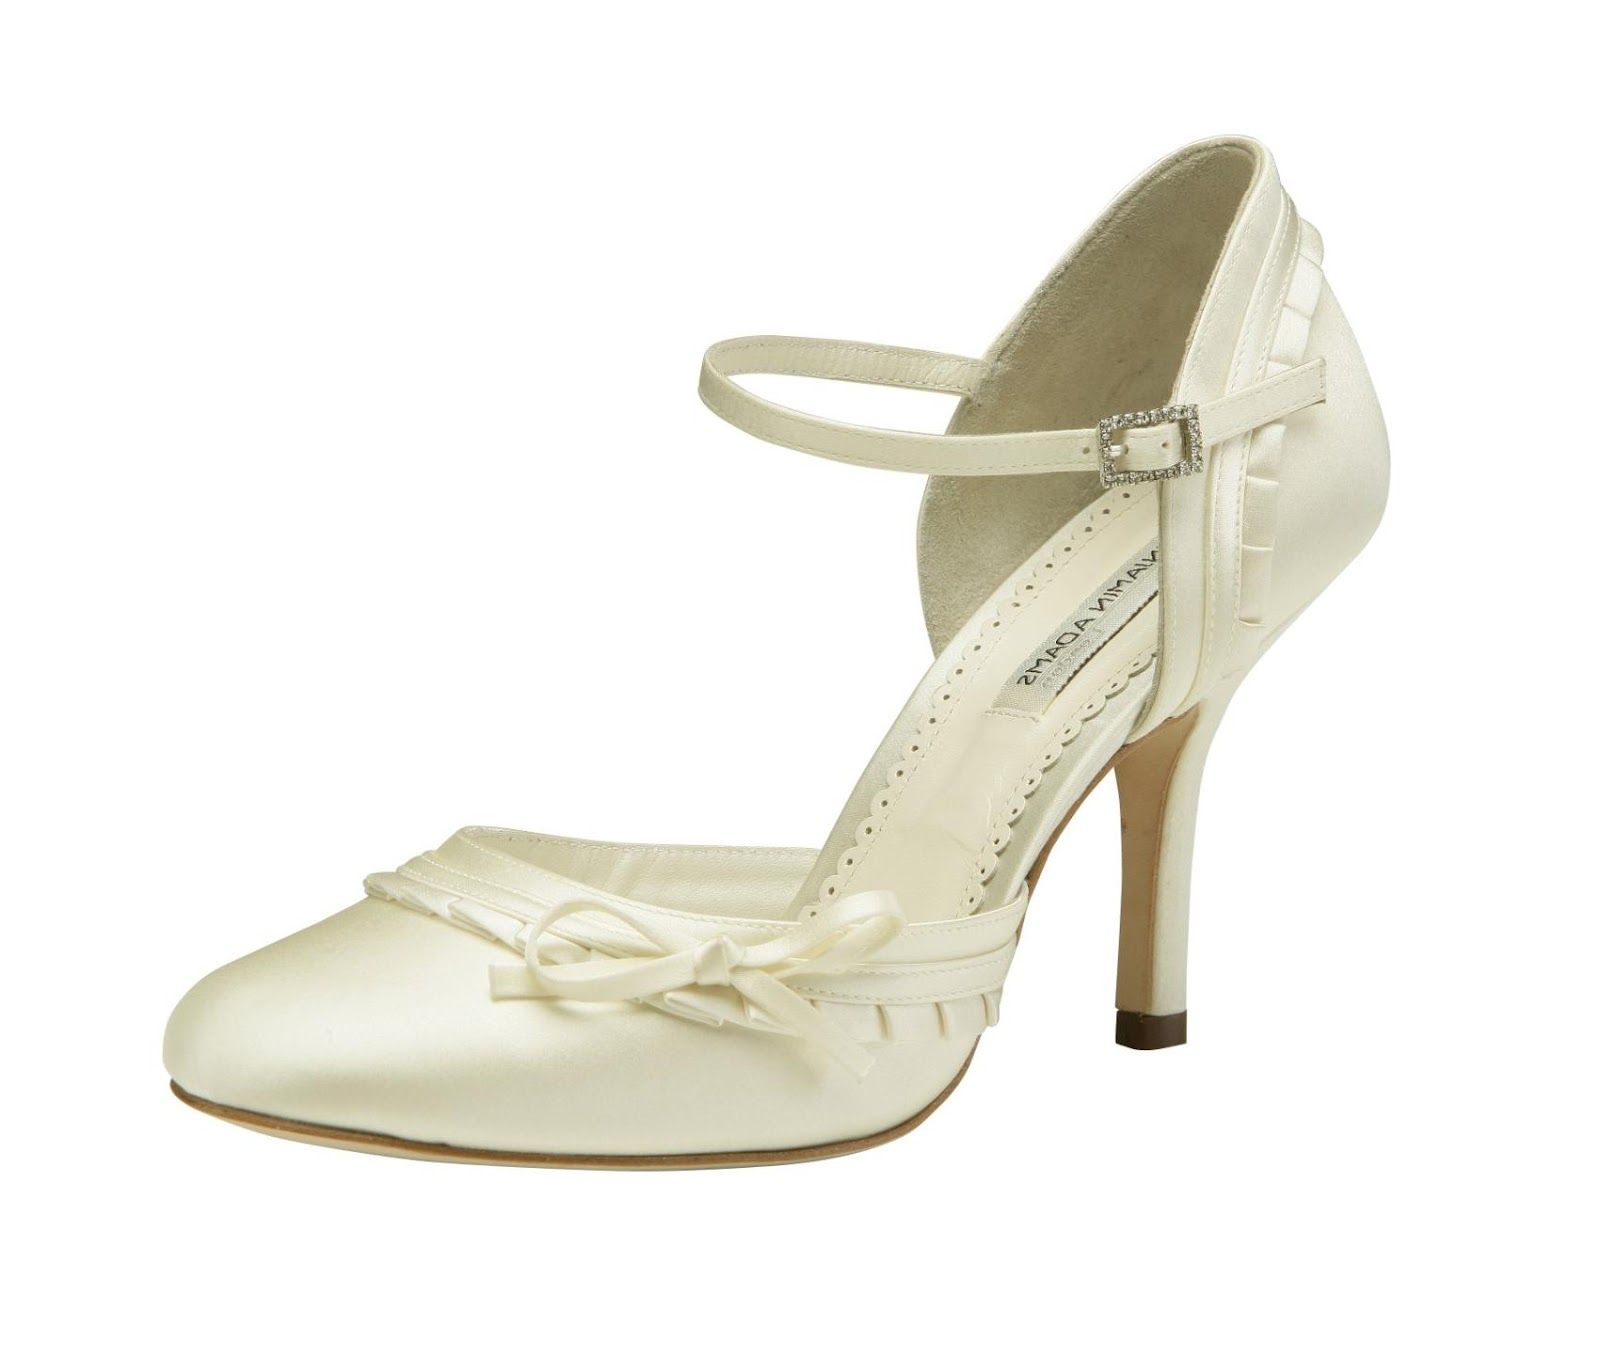 Adams Liza Wedding Shoes